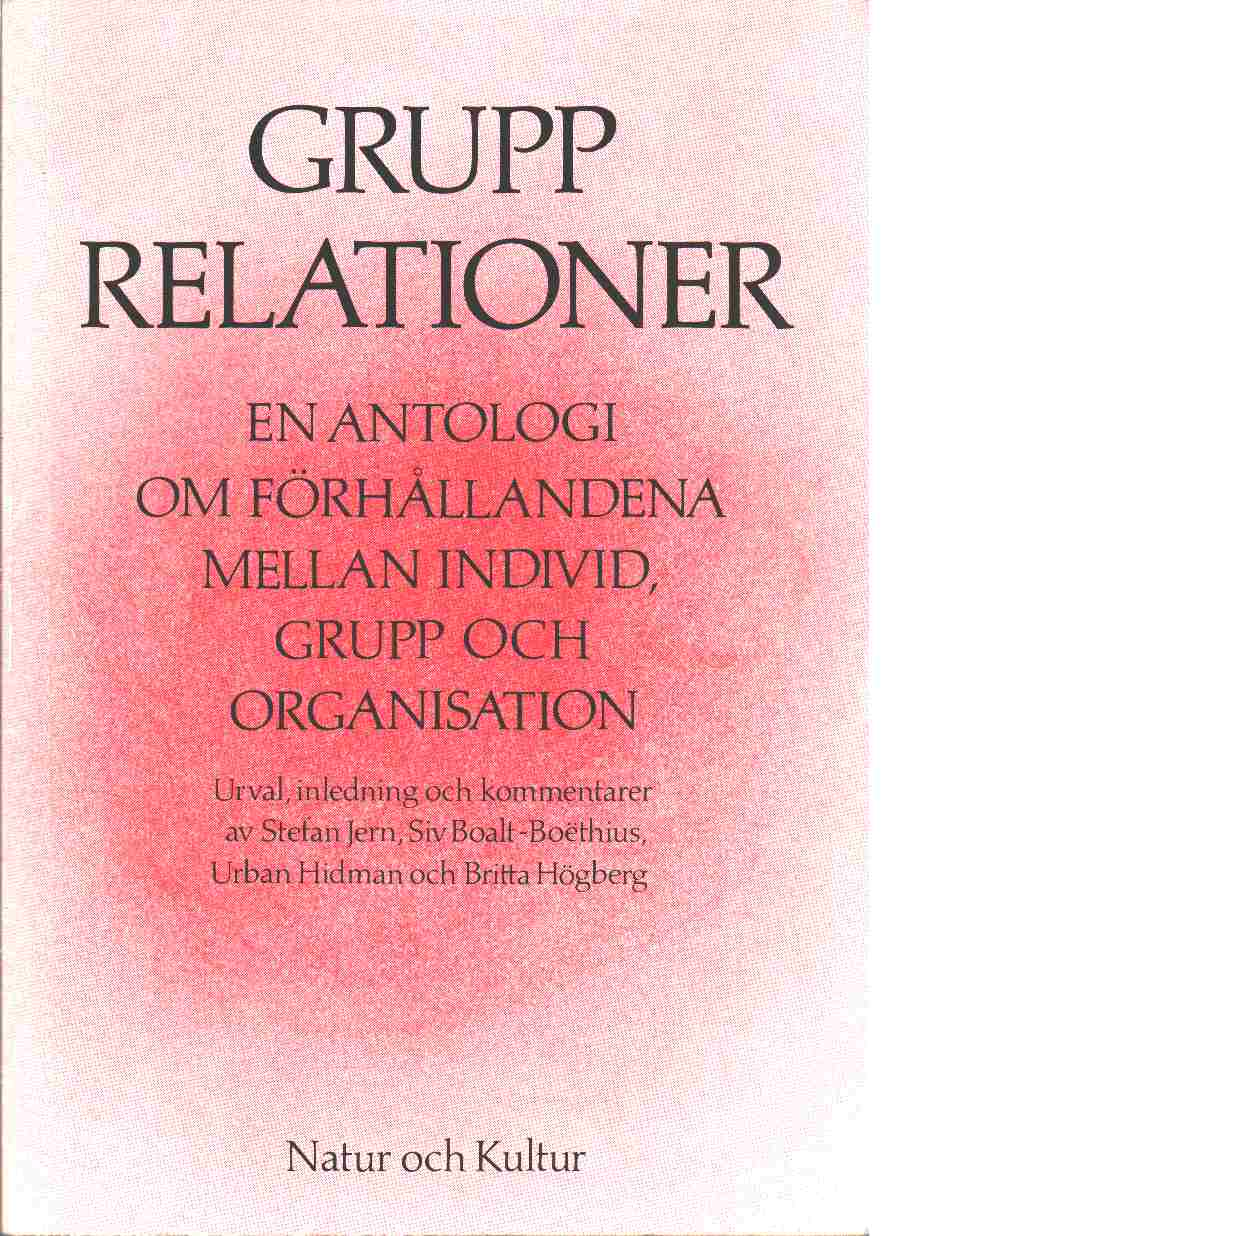 Grupprelationer - Red. Klein, Melanie